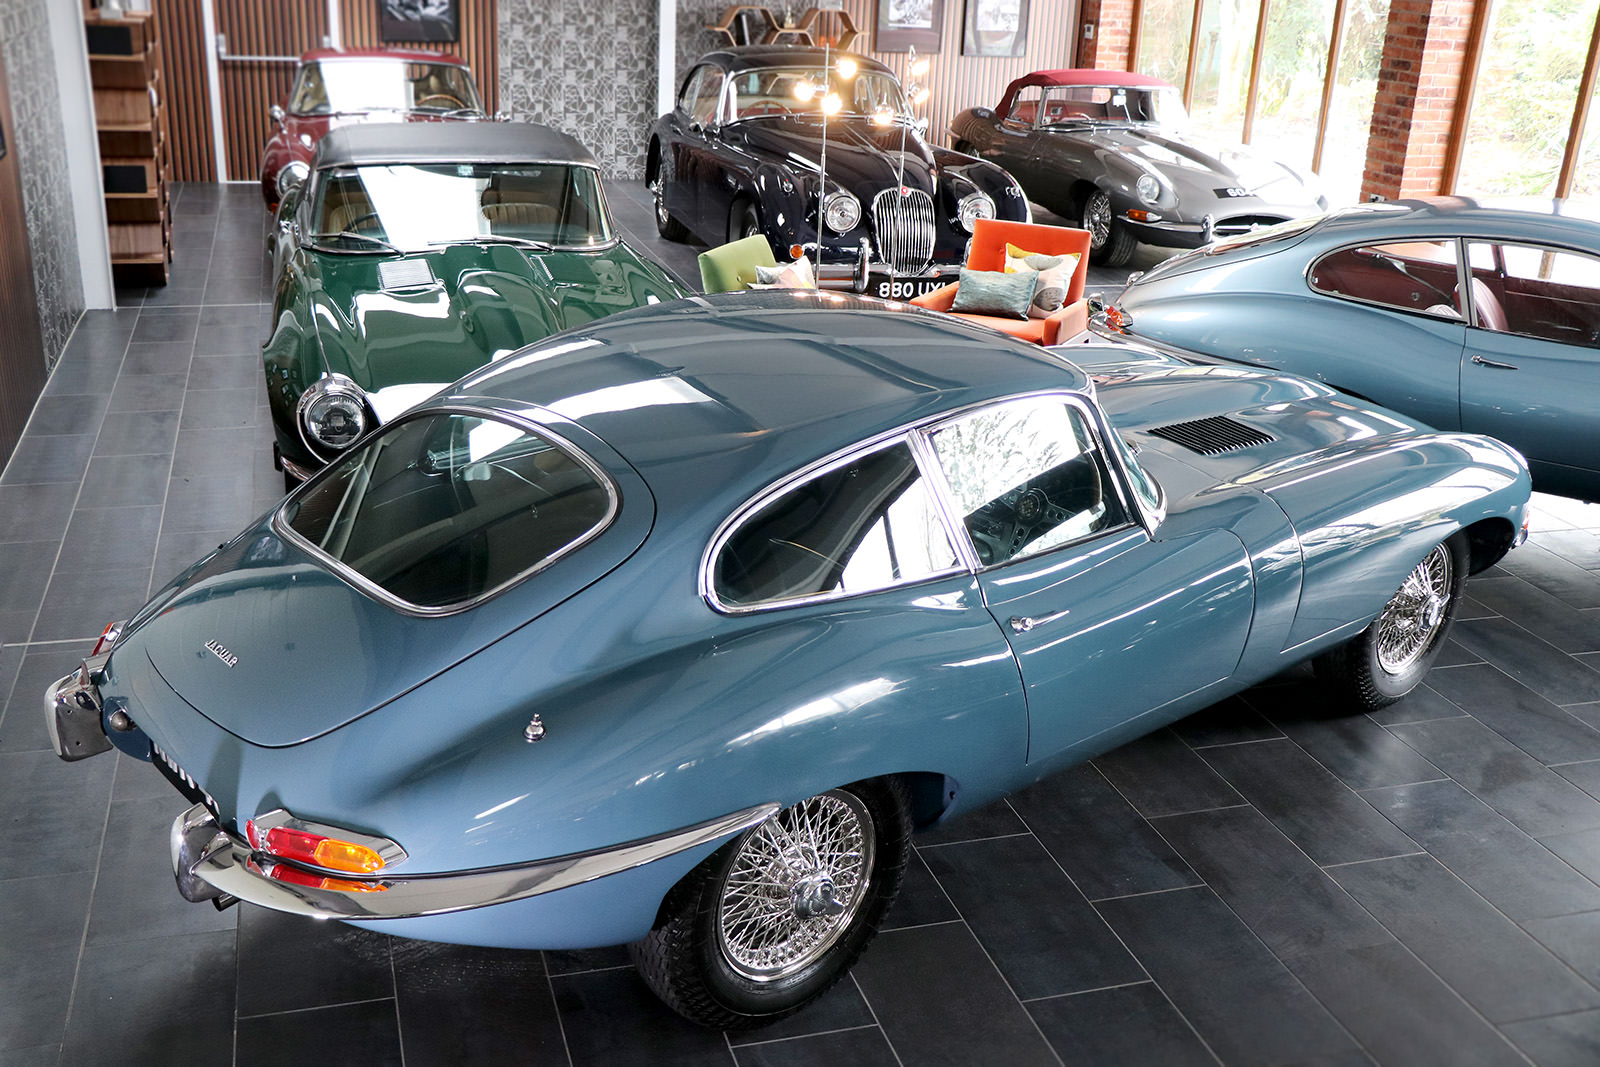 1963_cotswold_blue_series 1_jaguar_etype_sayer_selection_wilkinson_web_1.jpg